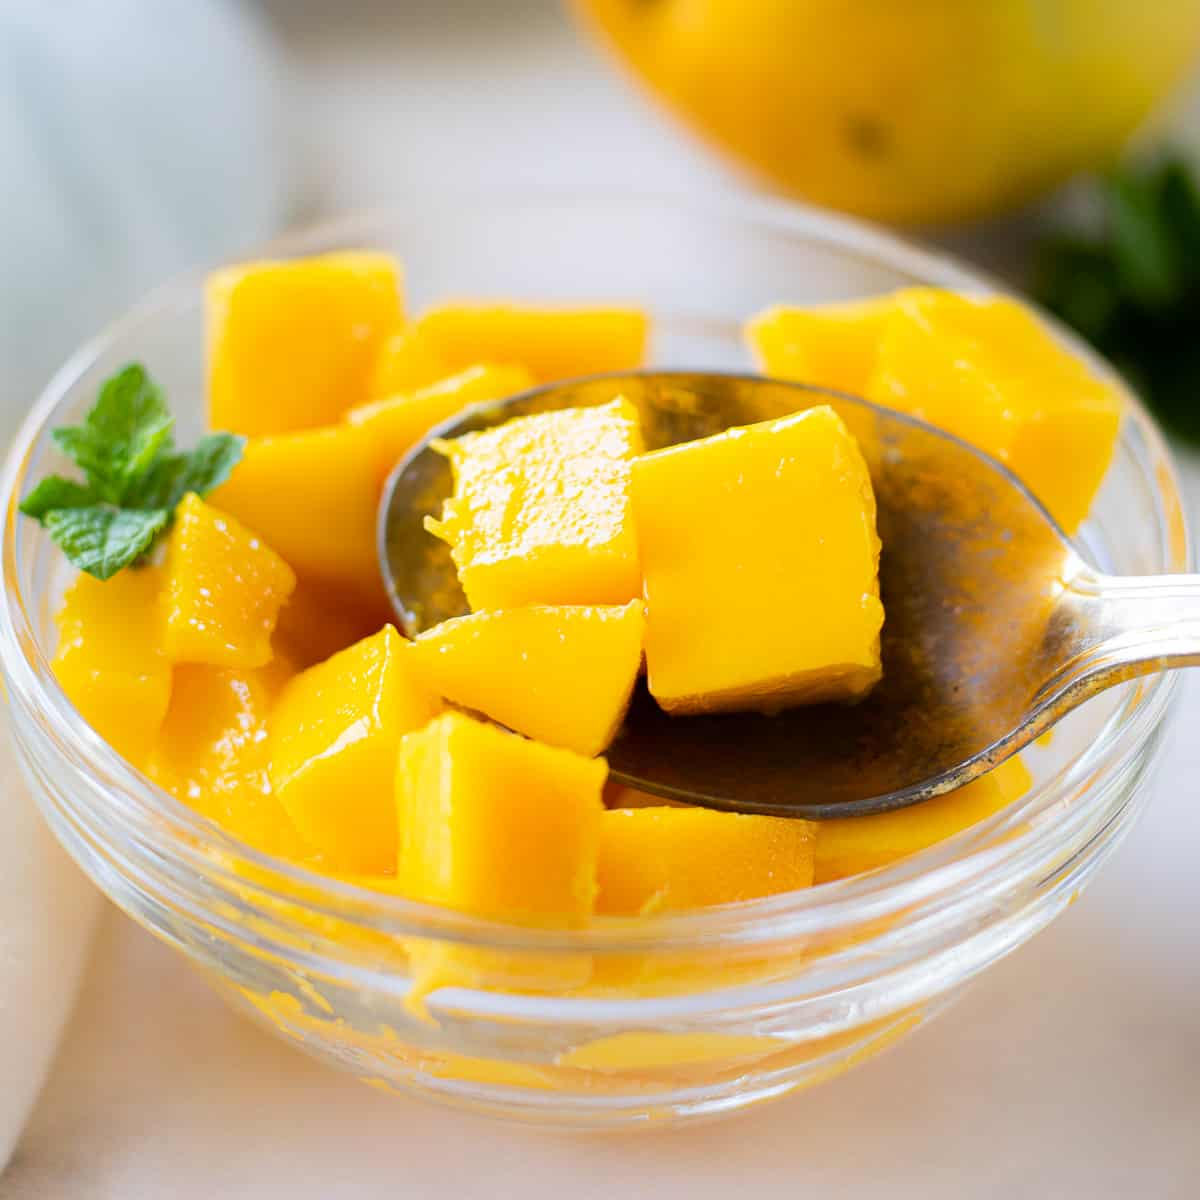 A clear bowl of diced mango chunks with a spoon holding 3 cubes with a mint garnish.